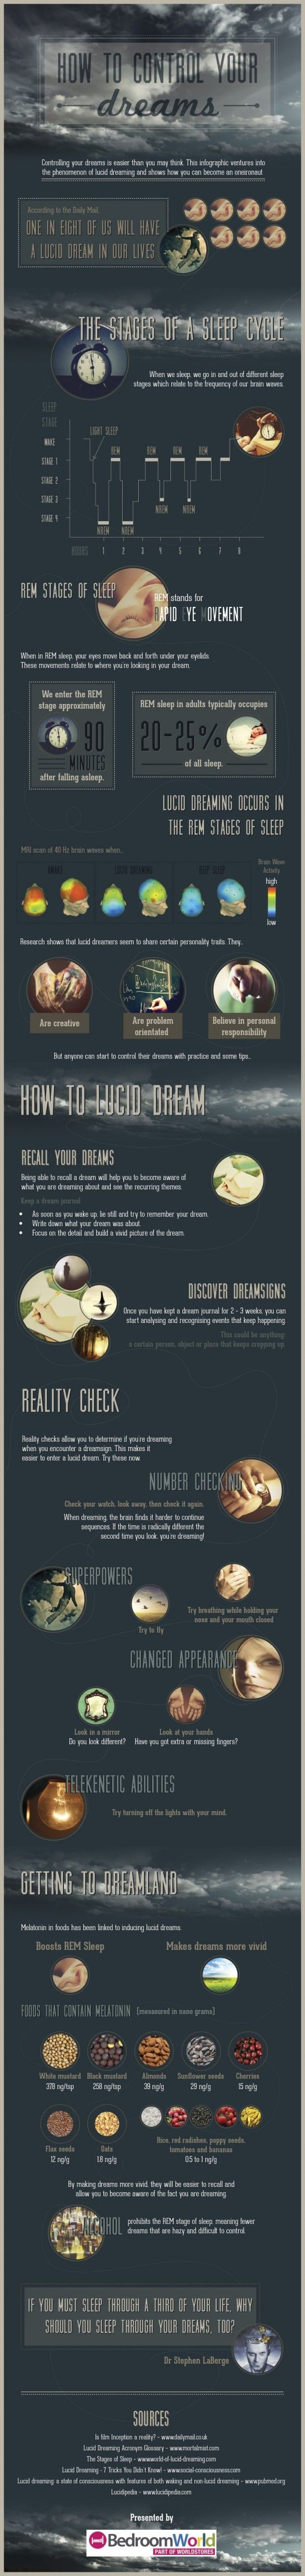 How To Control Your Dreams